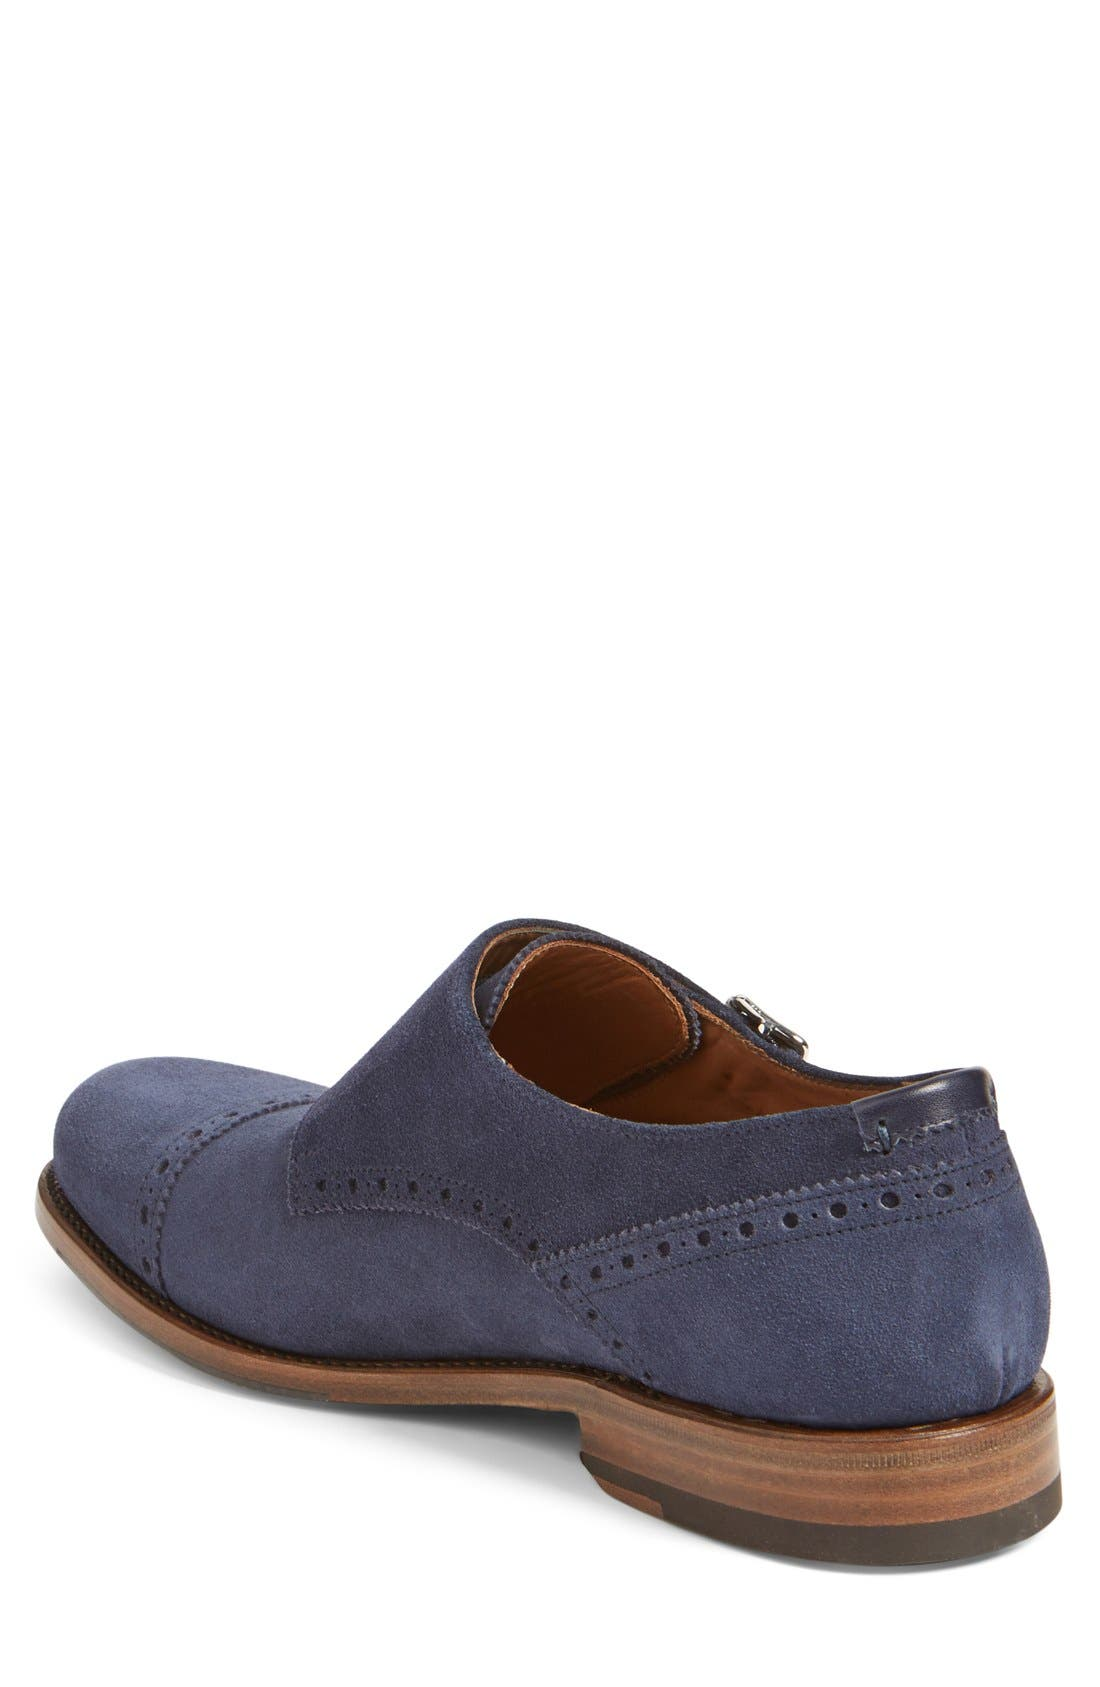 'Fallon' Weatherproof Monk Strap Shoe,                             Alternate thumbnail 2, color,                             Navy Suede